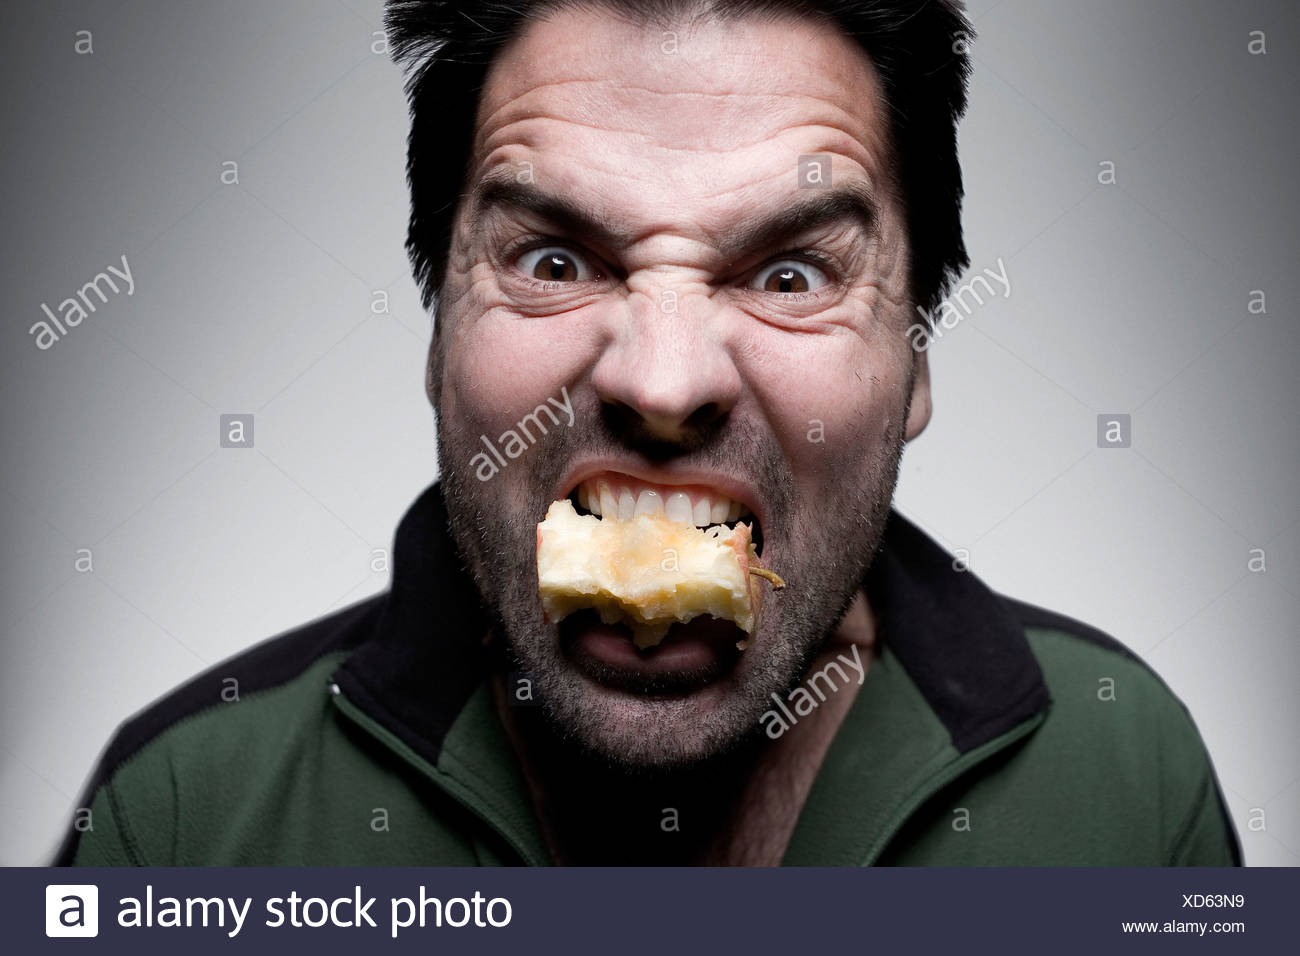 A man holds an apple core in his mouth, San Diego, California. - Stock Image